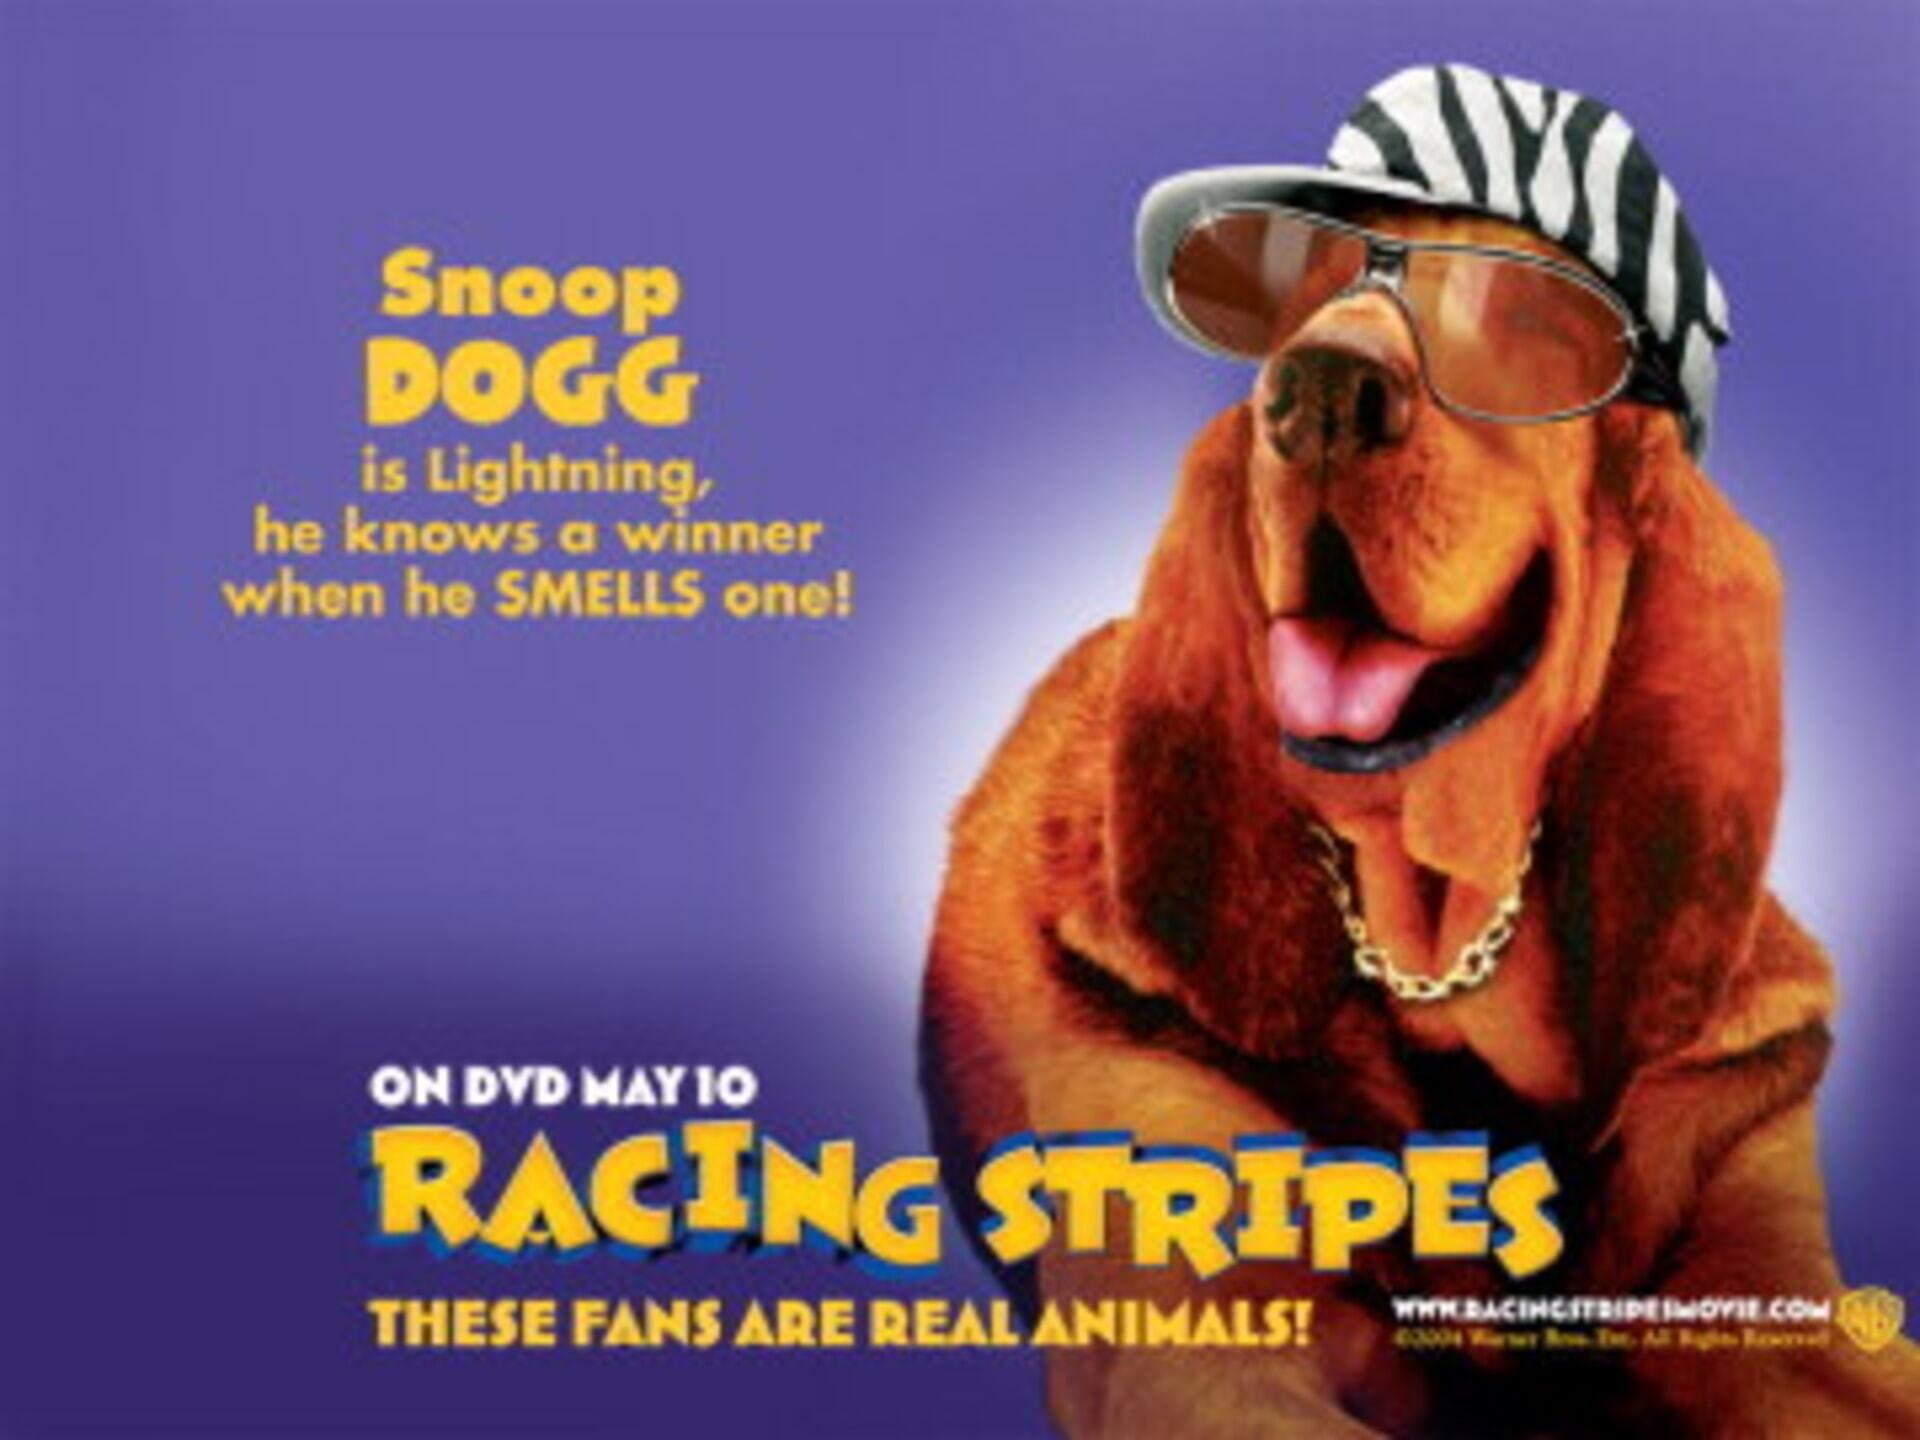 Racing Stripes - Image 35